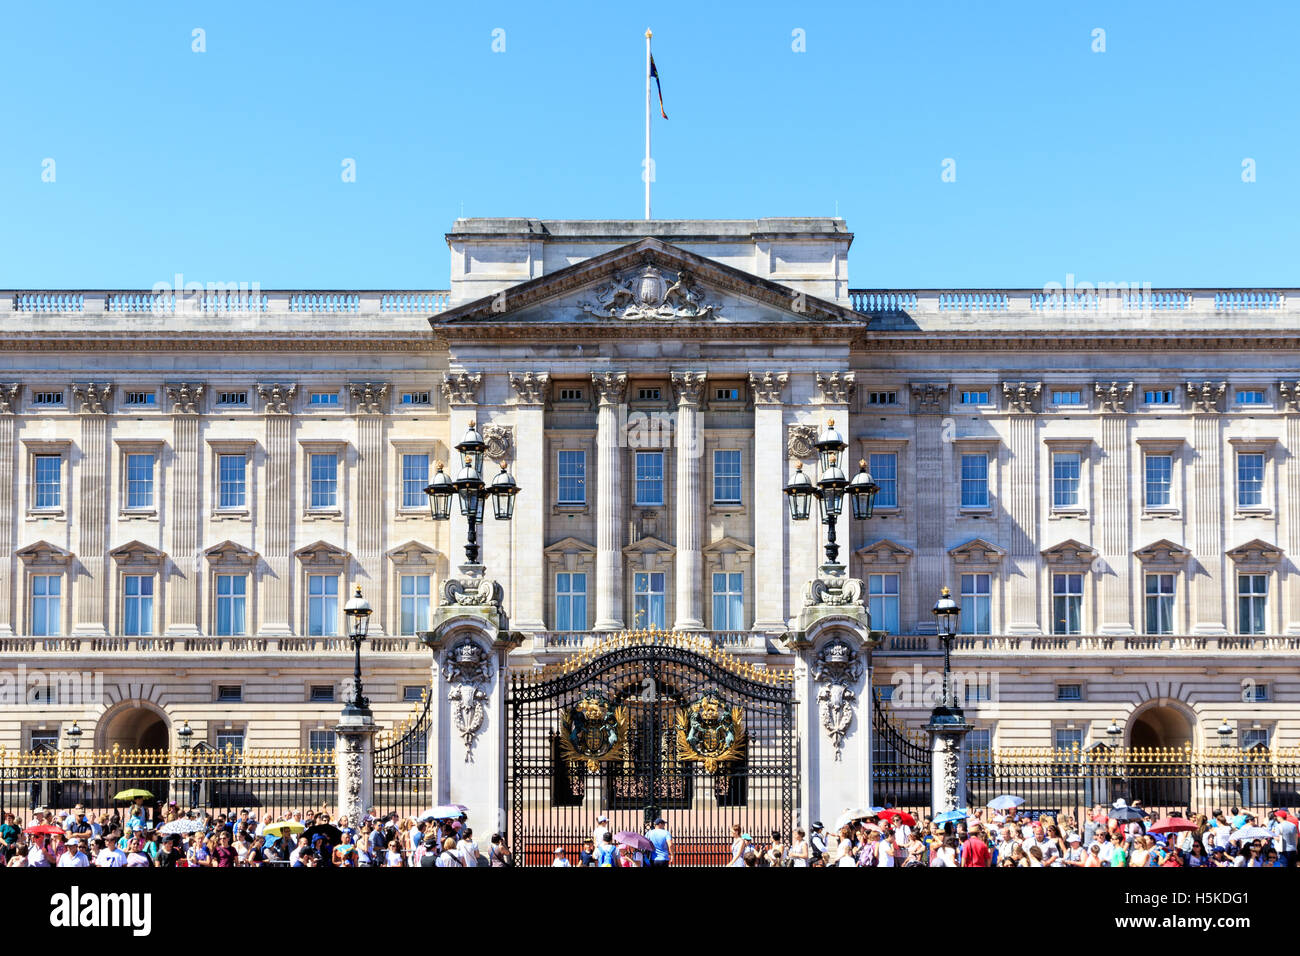 London, UK - July 19, 2016 - Buckingham Palace in London with a crowd of tourists outside on a cloudless day - Stock Image